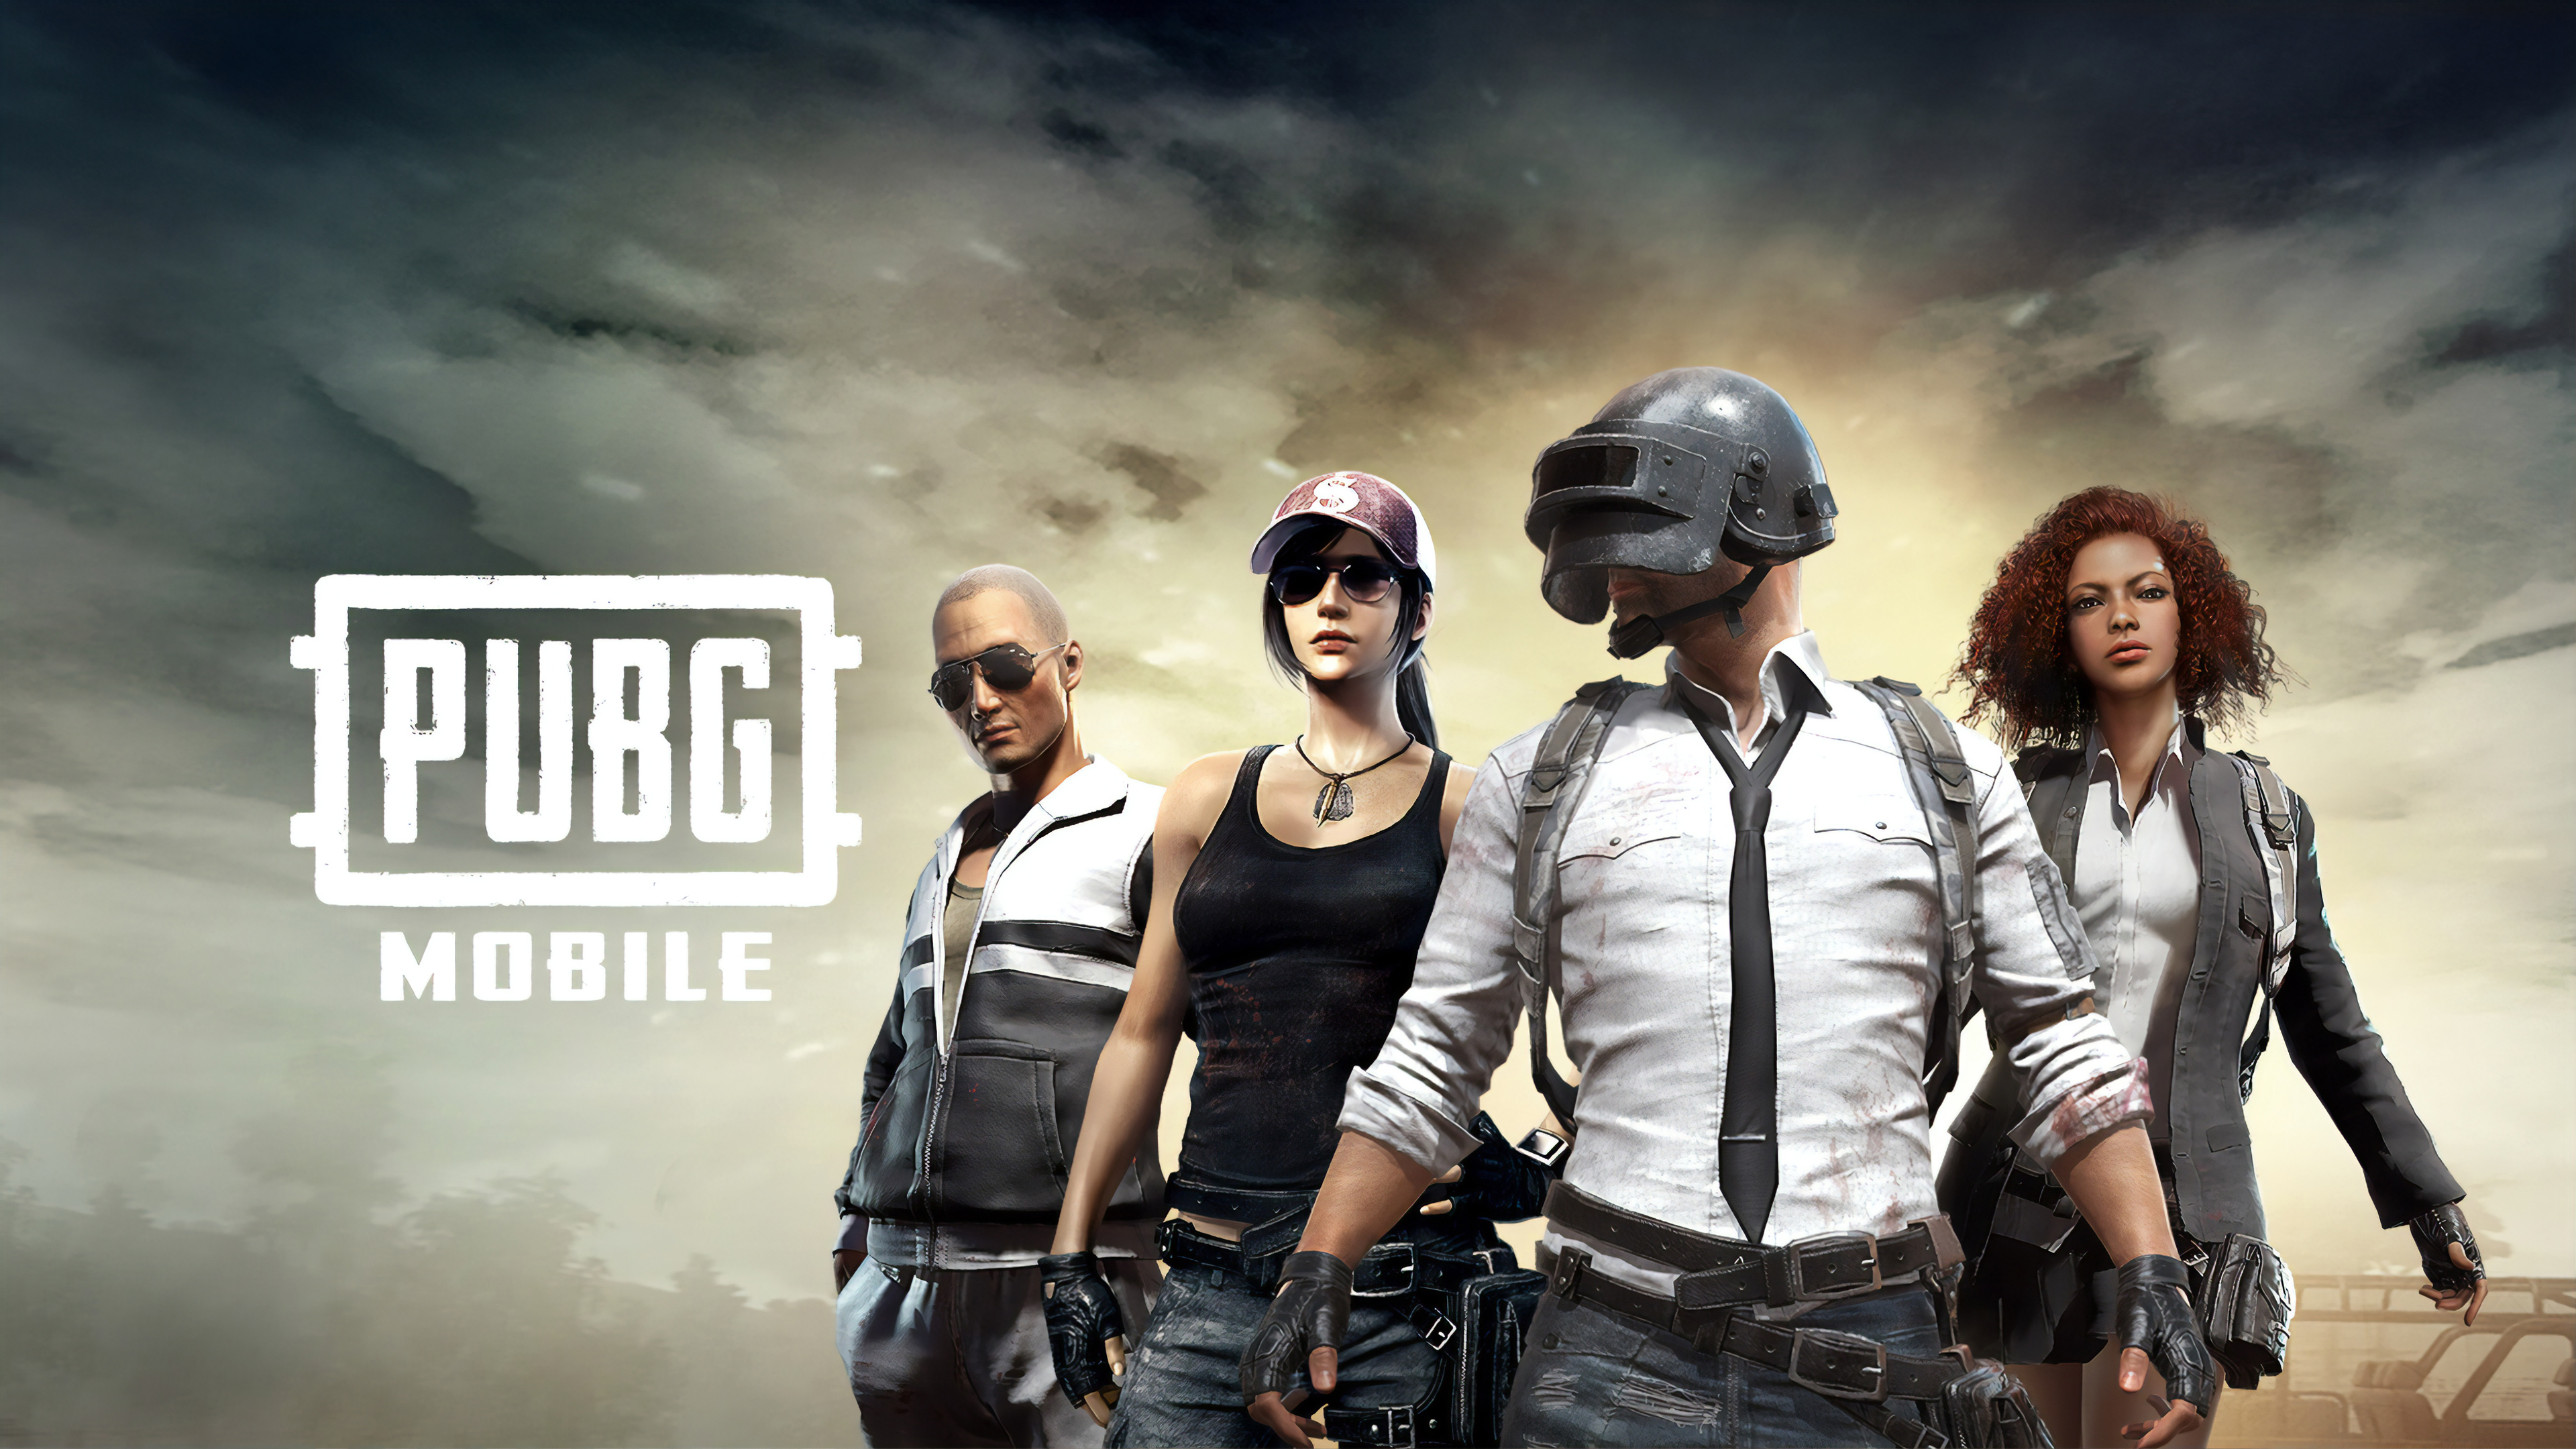 Pubg Mobile Wallpapers: Pubg Mobile 4k, HD Games, 4k Wallpapers, Images